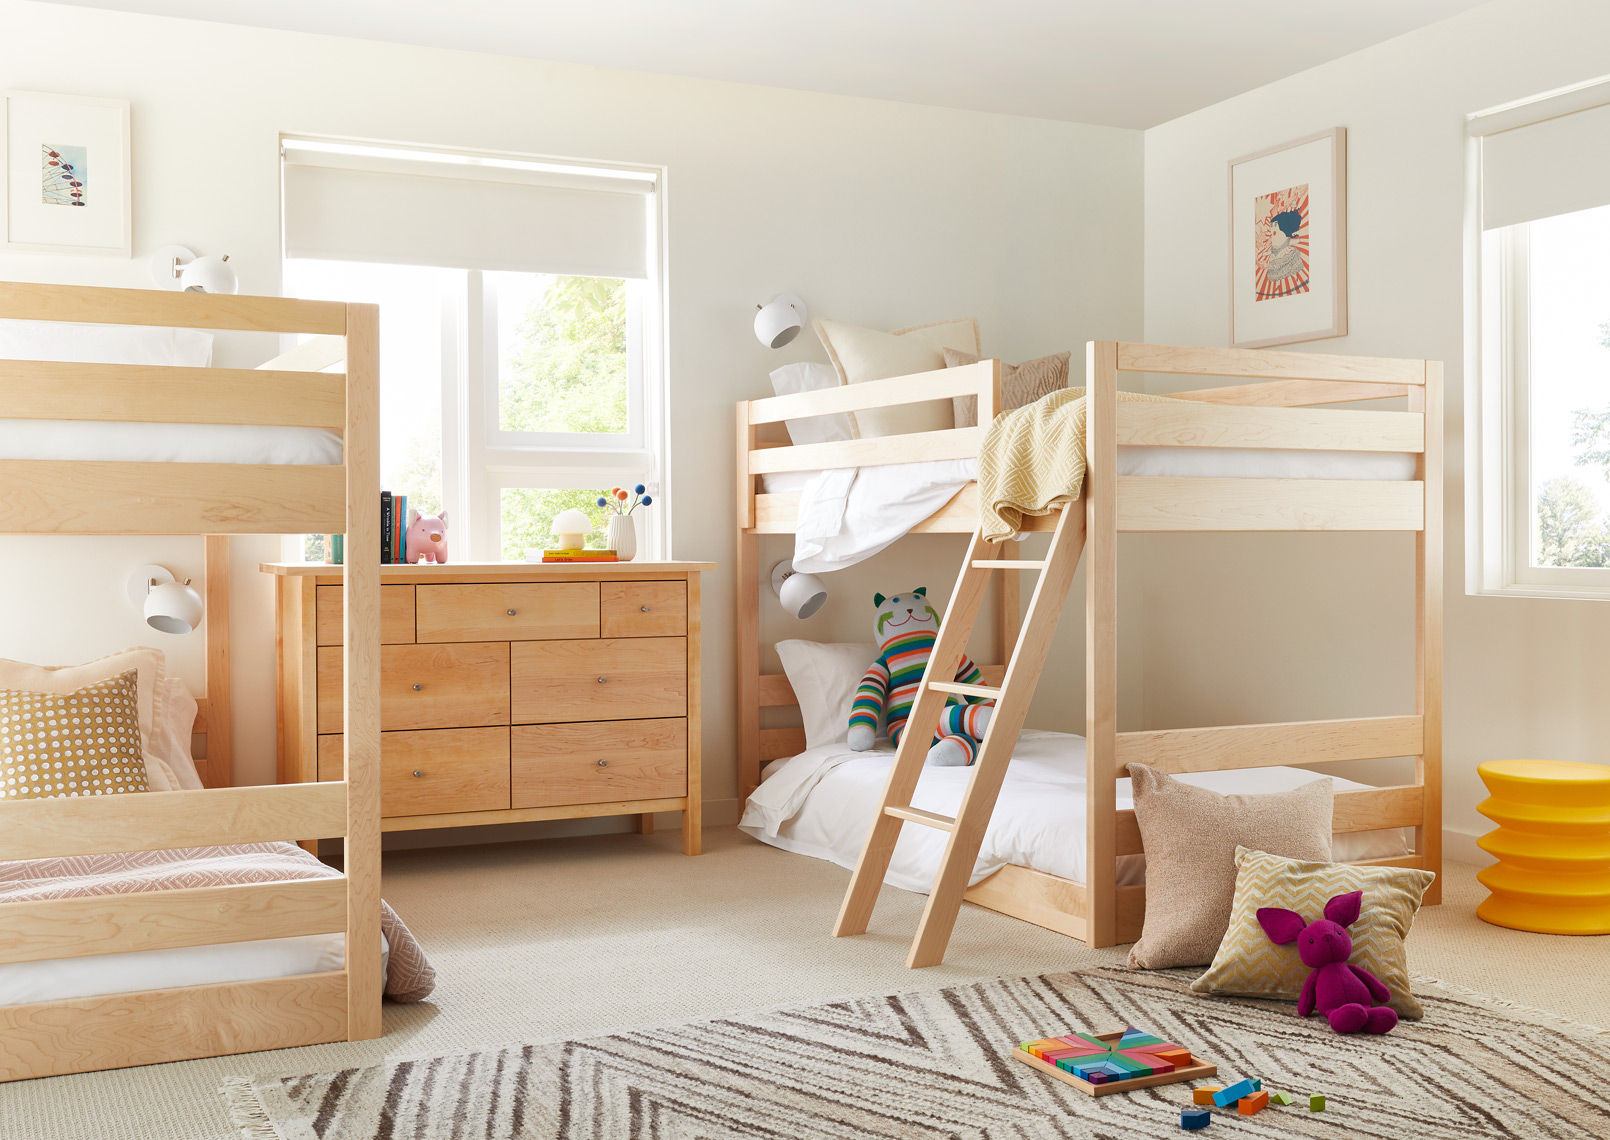 waverly_BunkBeds_1140h